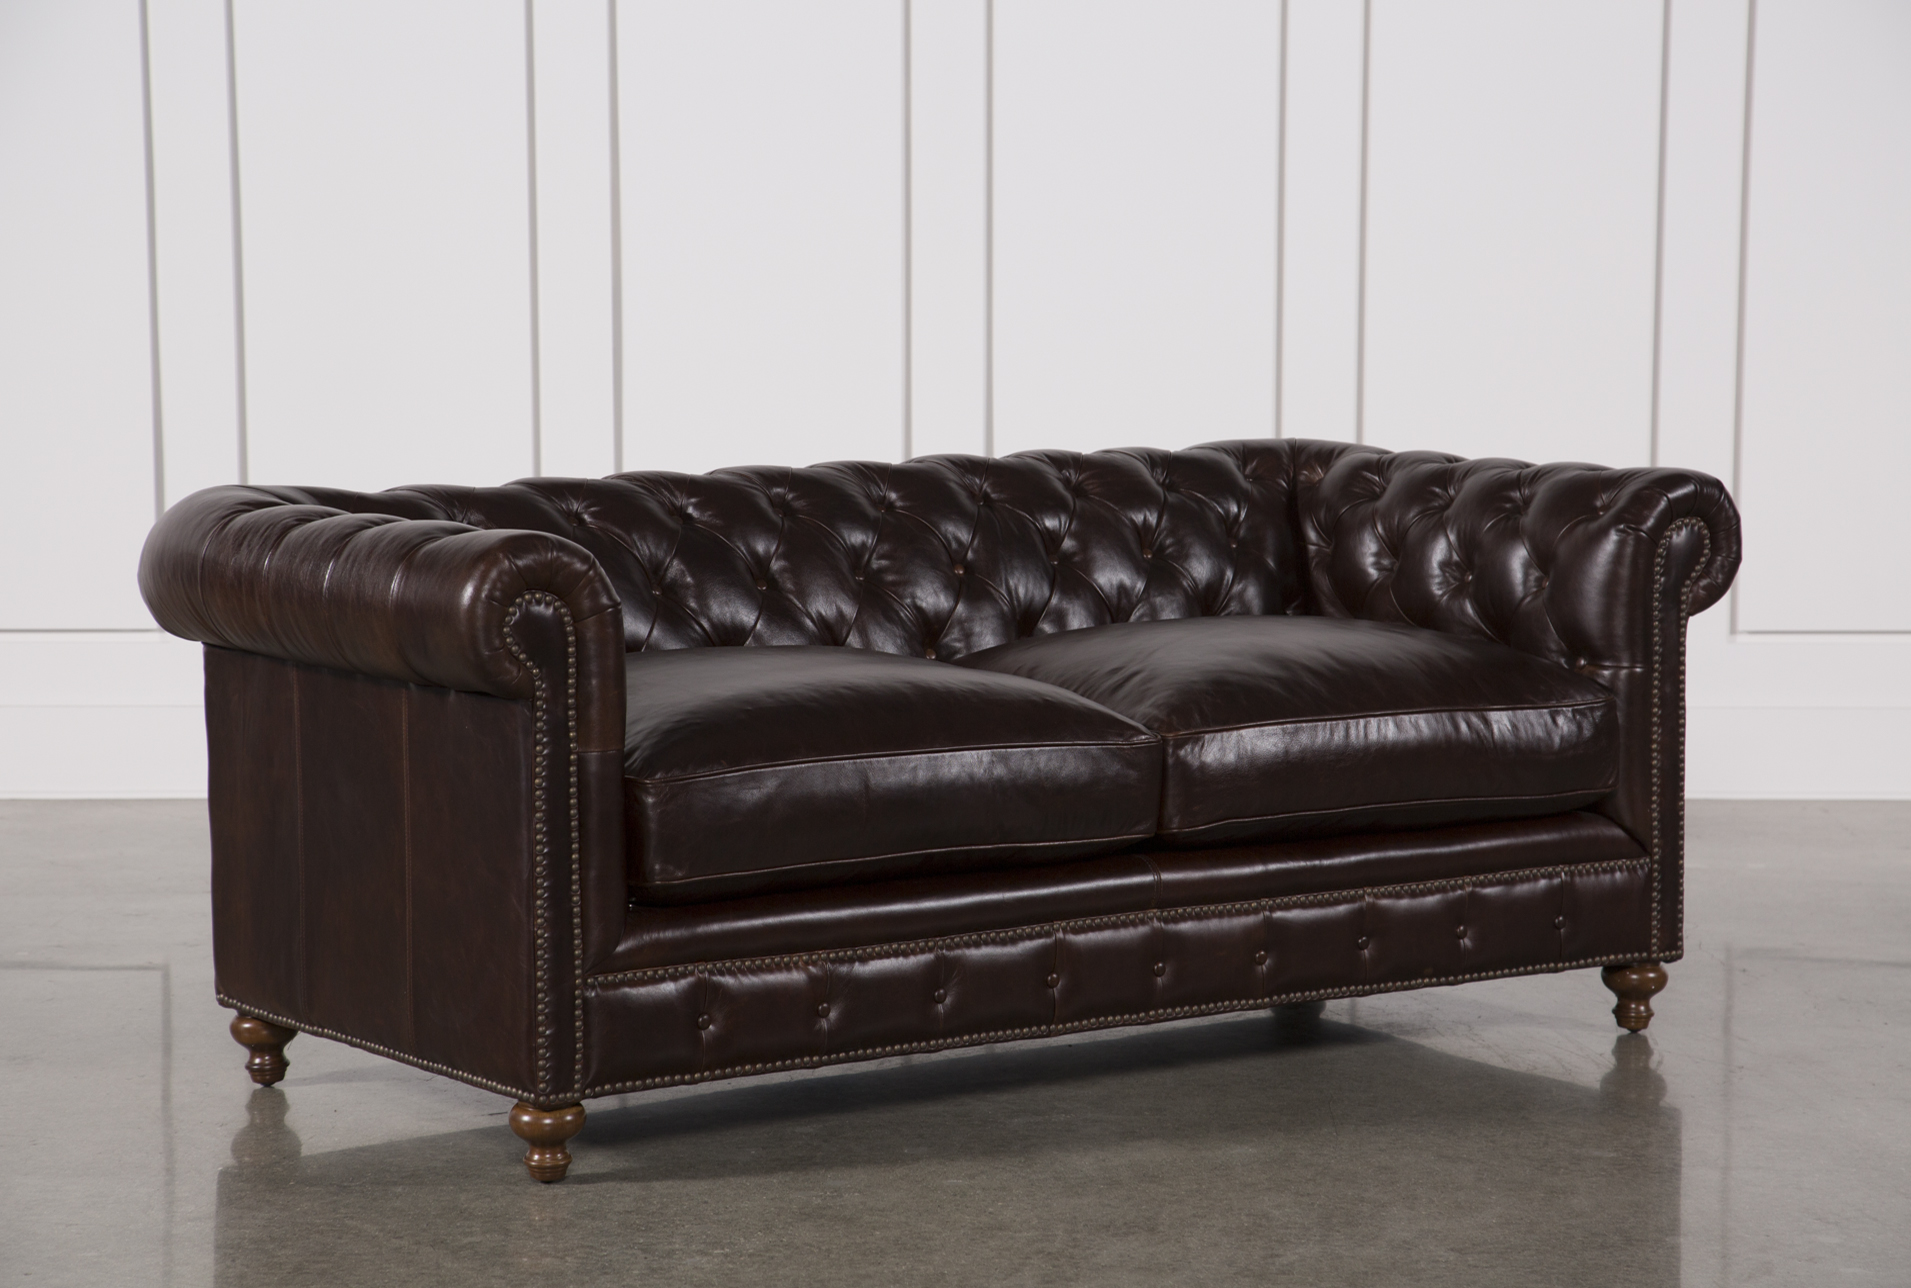 Delicieux Added To Cart. Mansfield 86 Inch Cocoa Leather Sofa ...